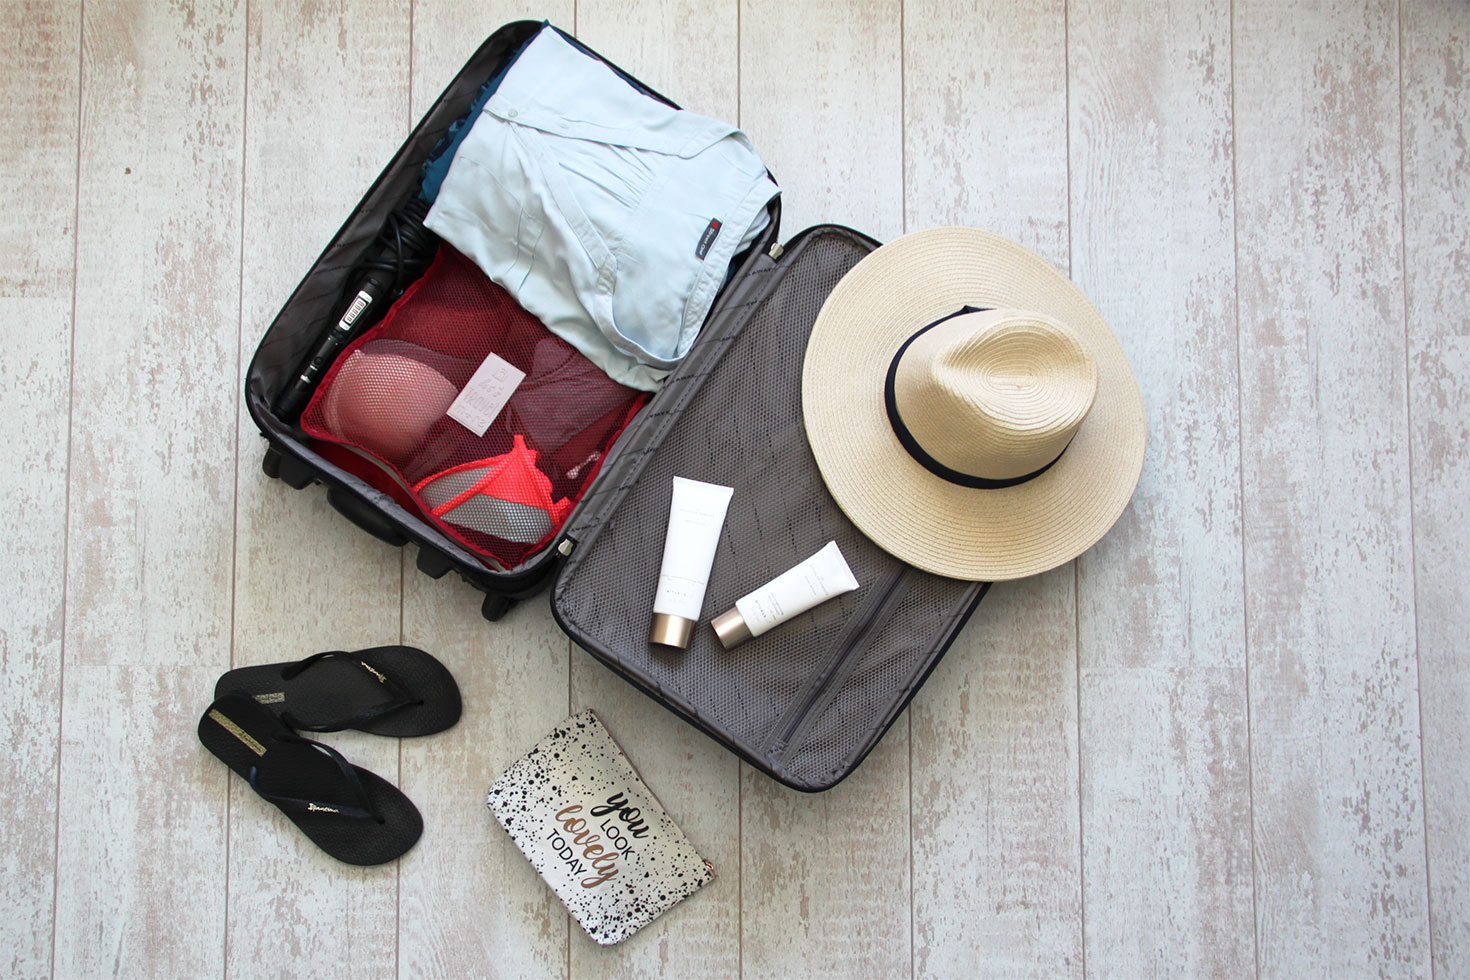 No worrying about packing your travel bag